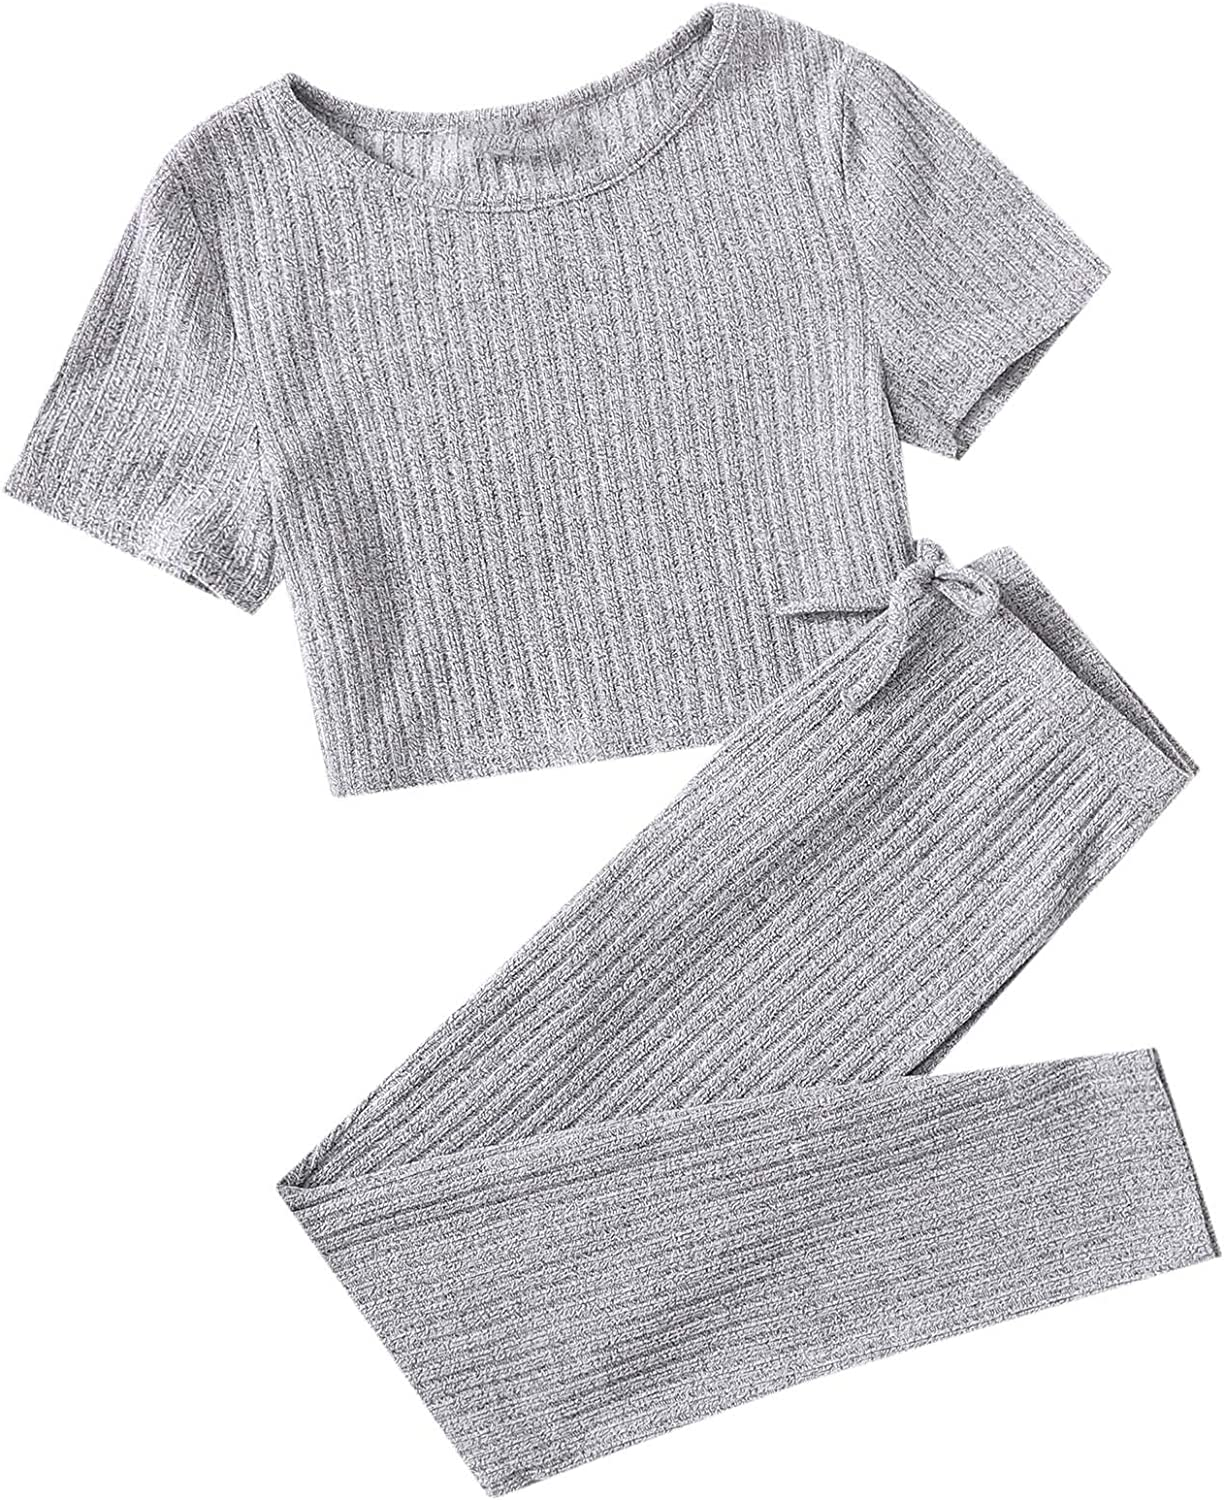 Romwe Girl's 2 Piece Outfit Fashion Ribbed Cro Knit New Shipping Free Workout Short Sleeve